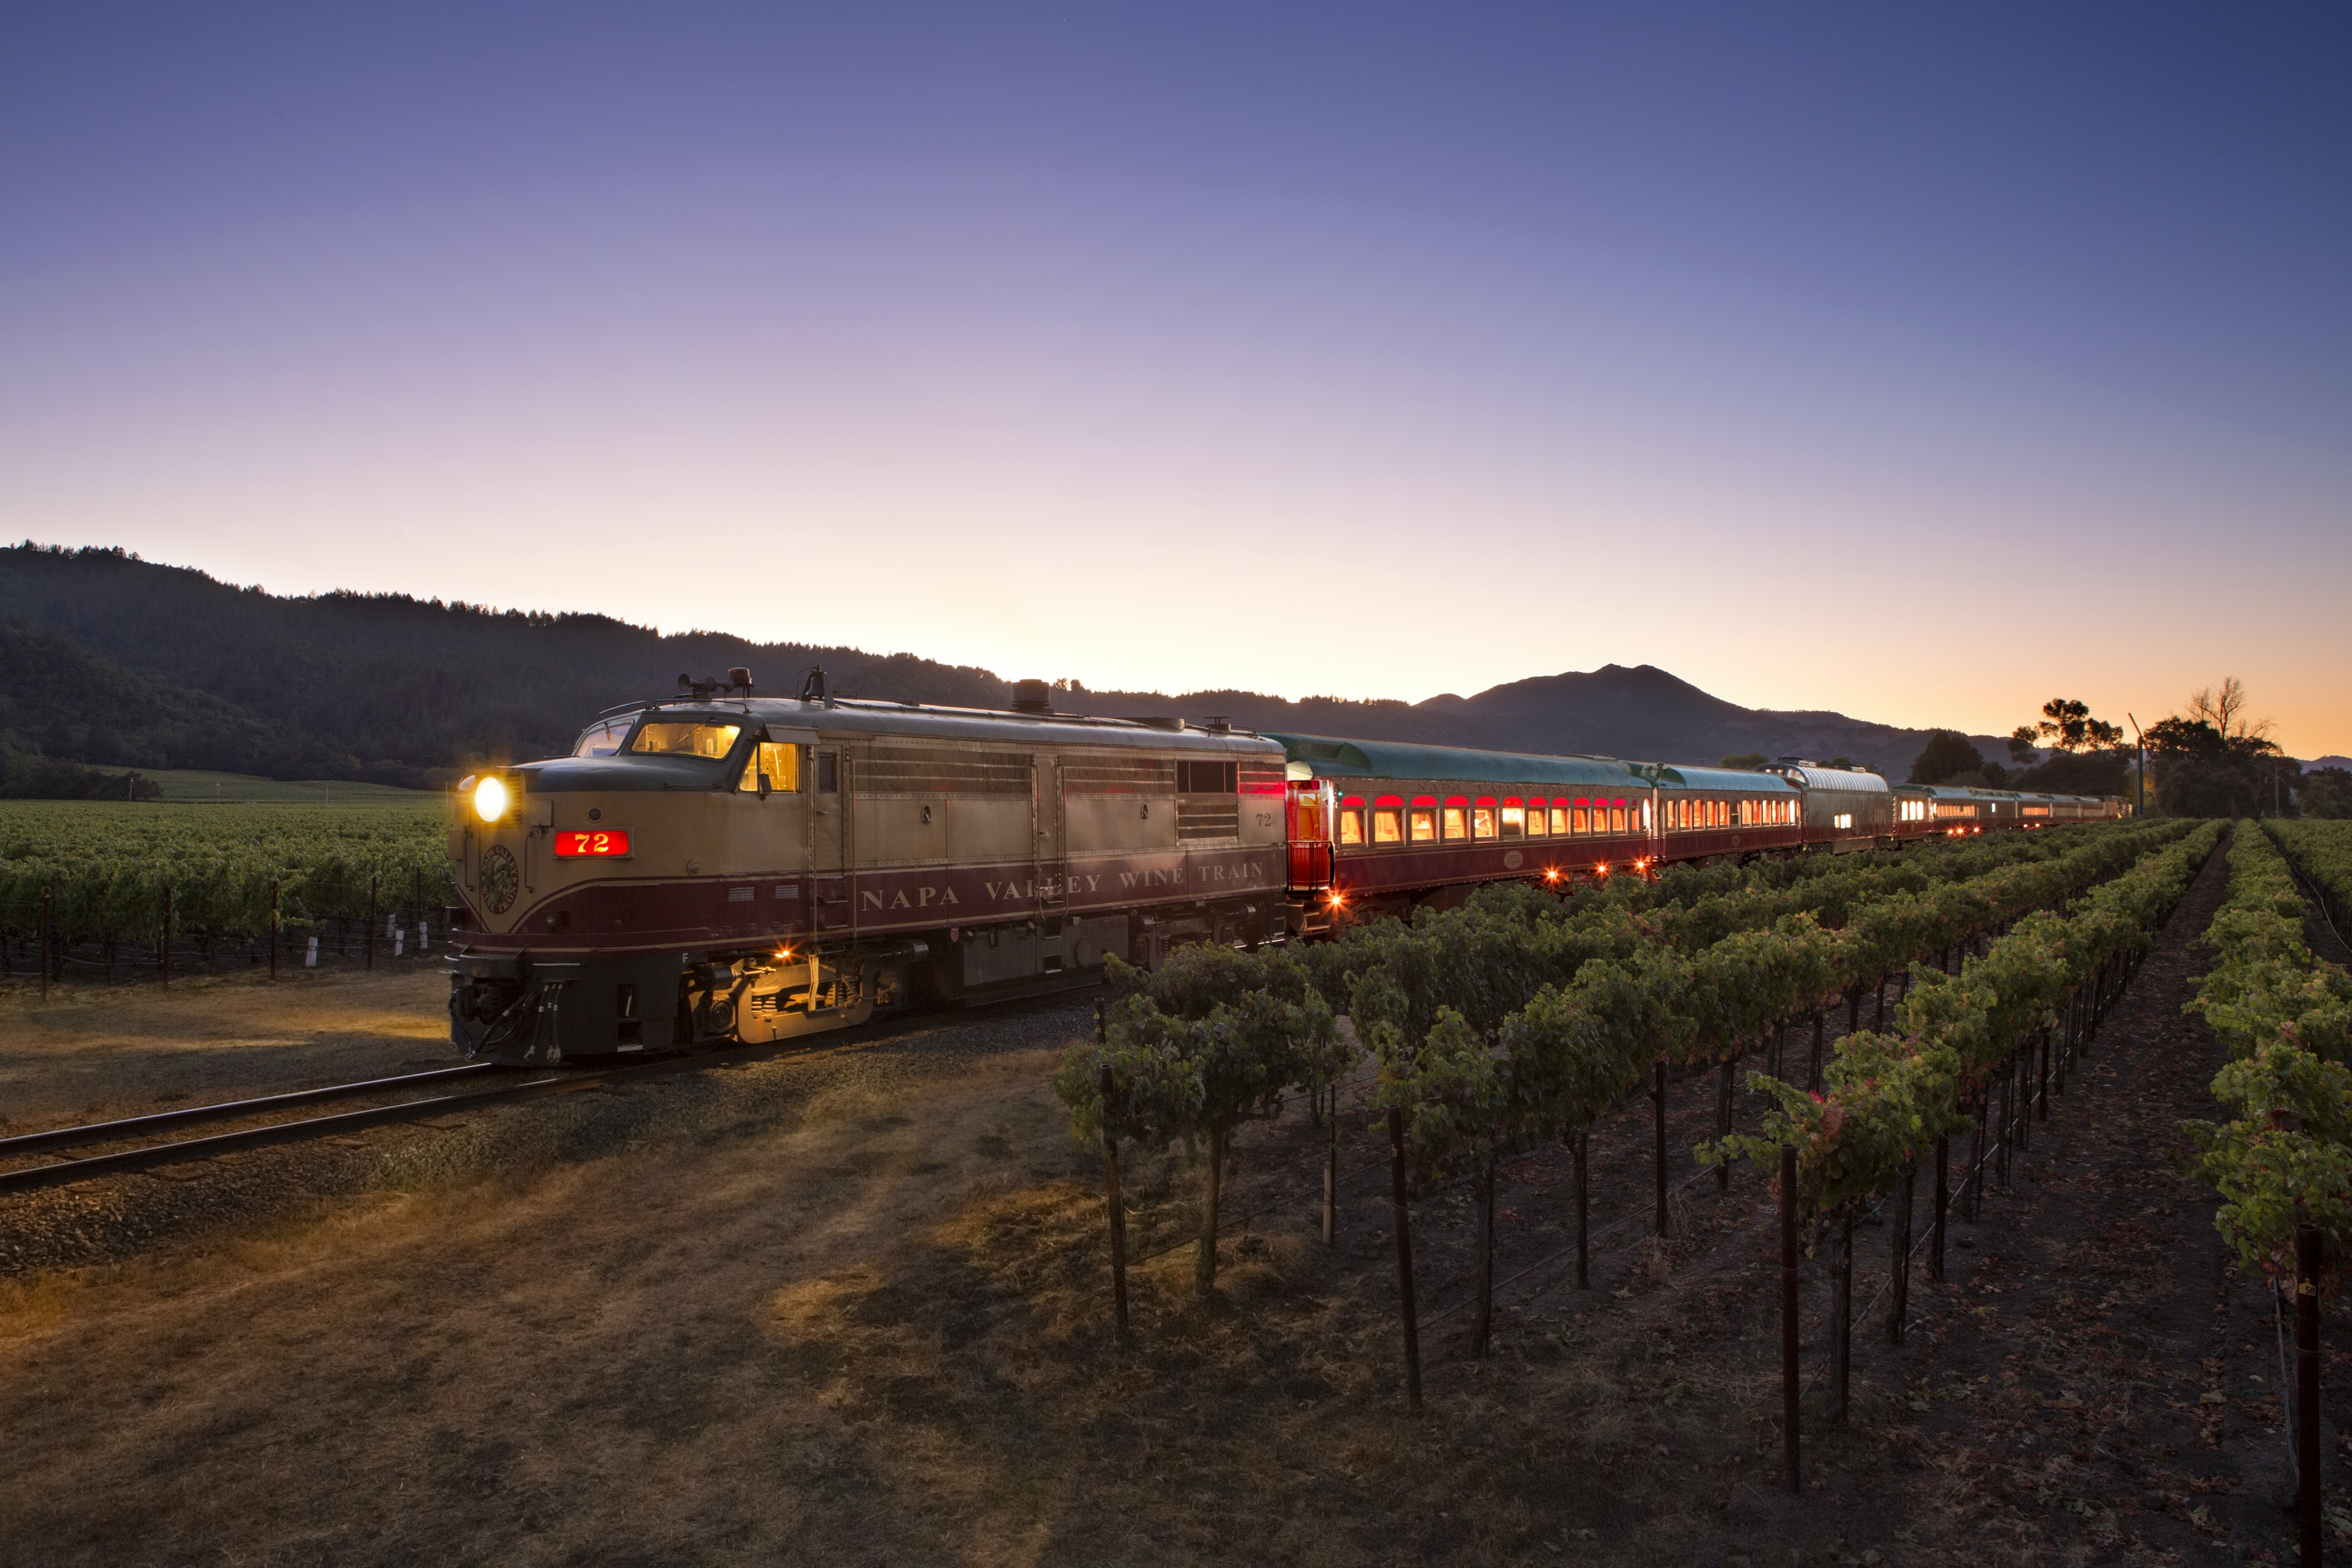 The Wine Train has a variety of itineraries to choose from, including a Castle Winery Tour and a visit to Grgich Hills Winery.